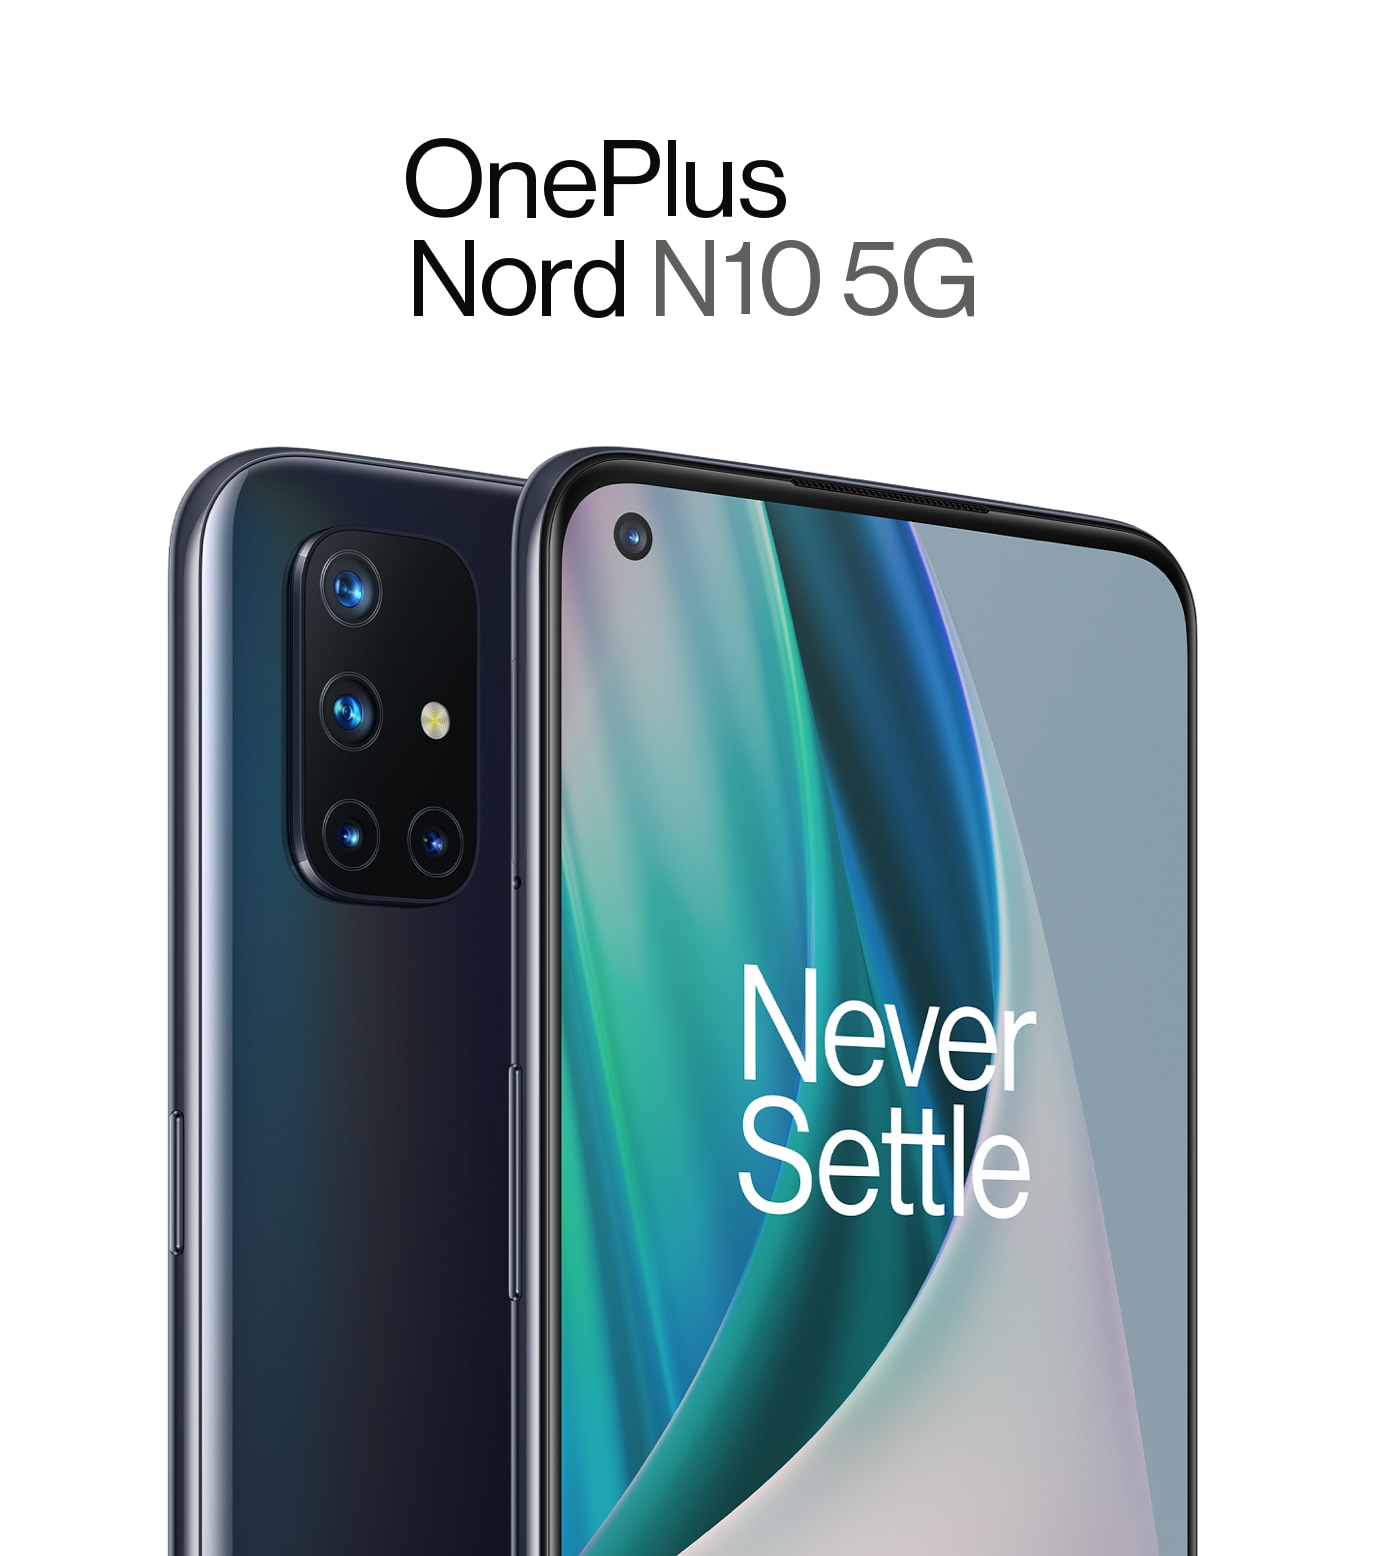 Learn about the OnePlus Nord N10 5G from Metro